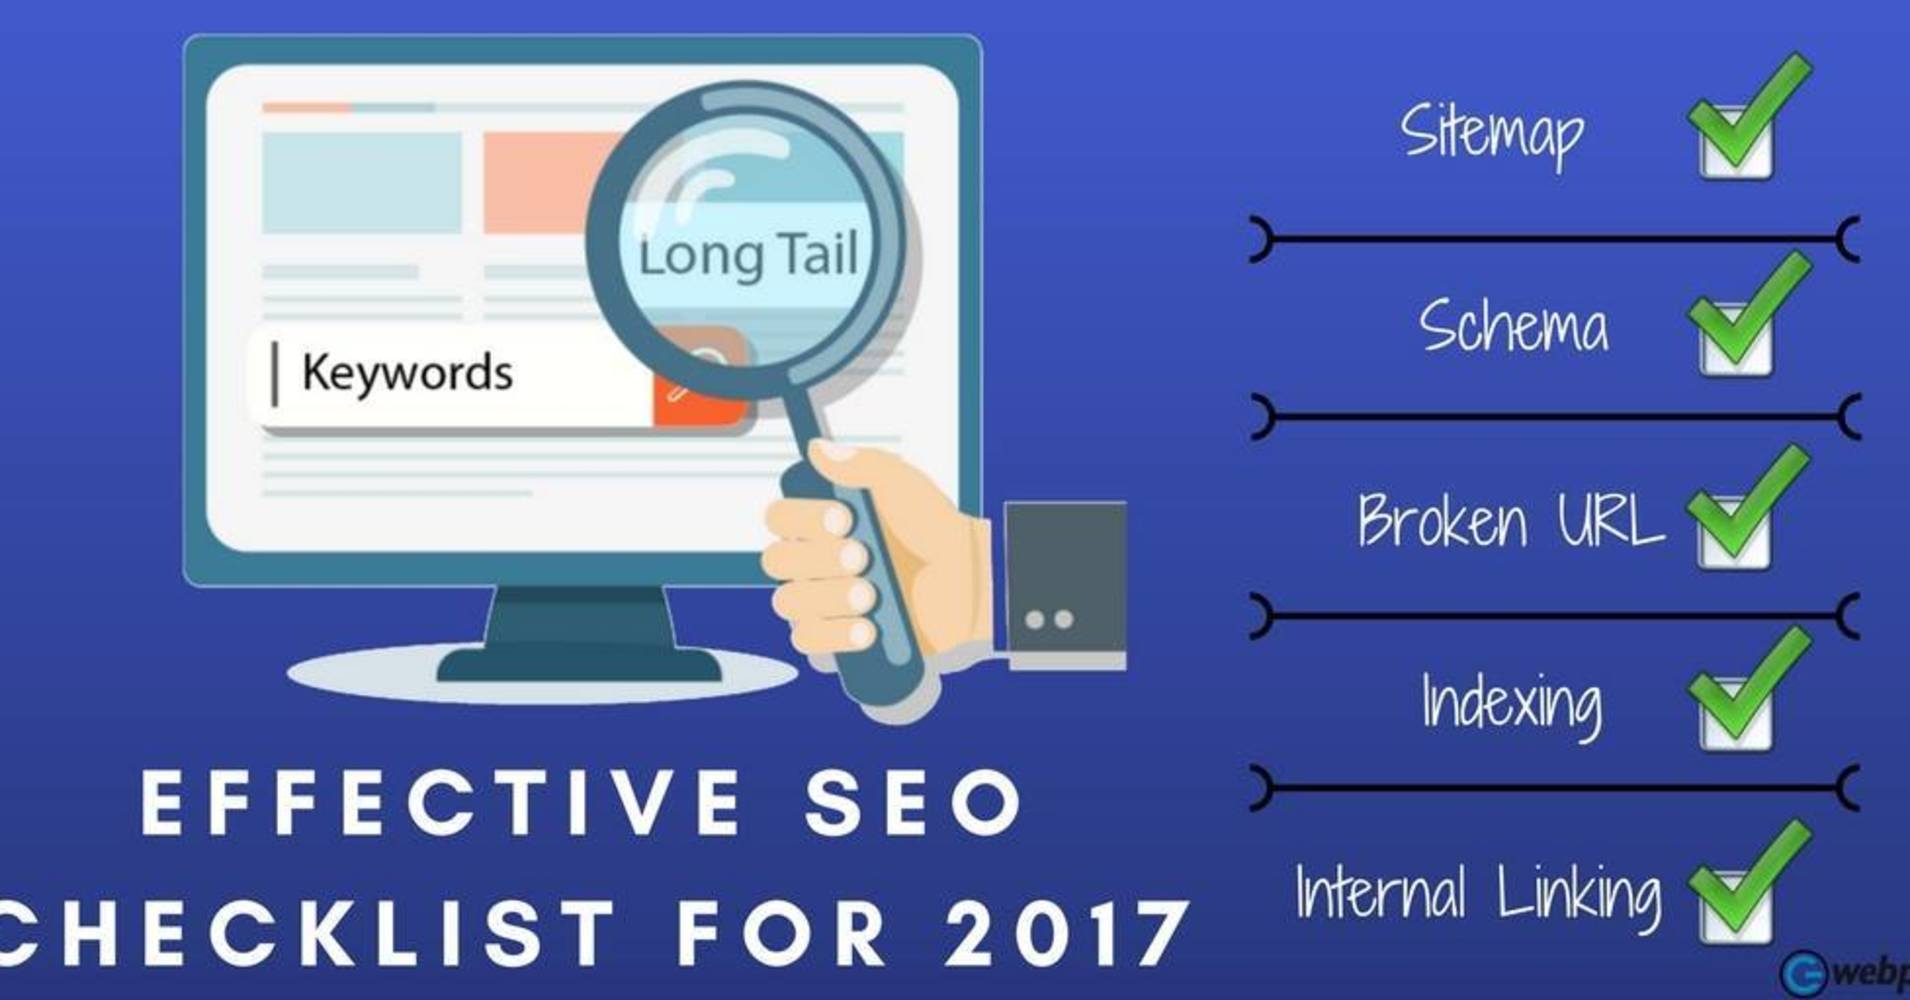 Effective SEO Checklist for 2017